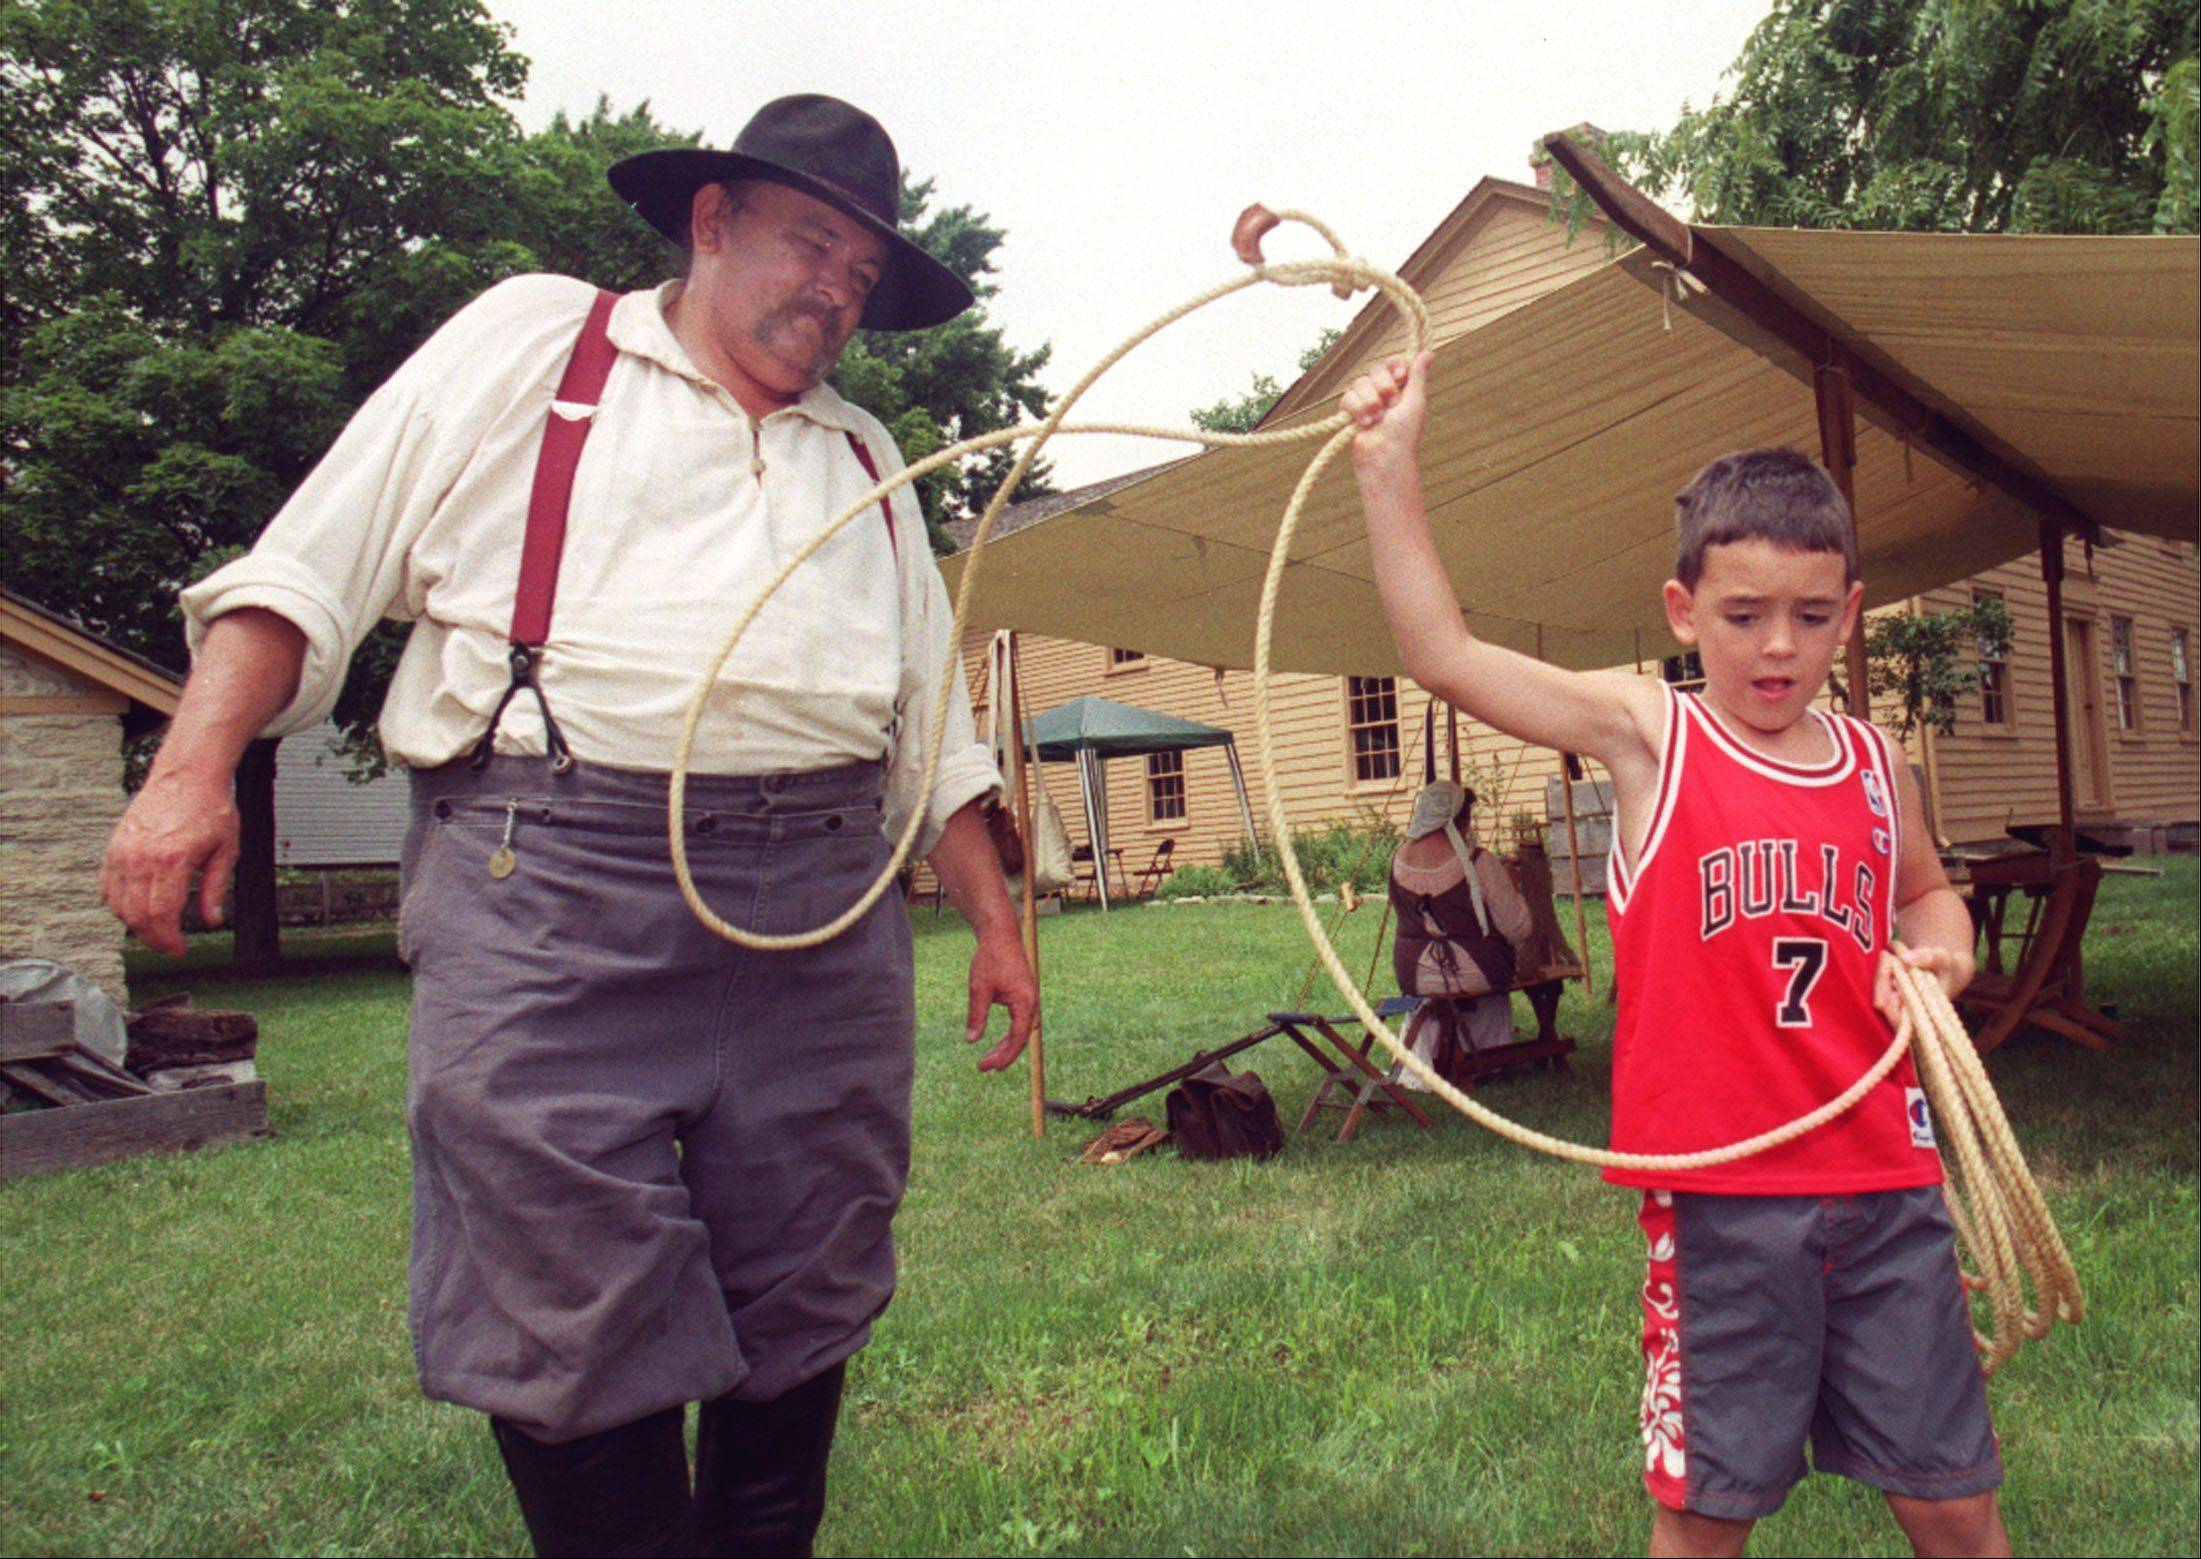 Glen Ellyn's Tavern Day is full of 19th century fun such as learning to use a lasso or playing pioneer games. The event on Sunday, Sept. 30, at Stacy's Tavern also invites visitors to try their hands at settler-era chores.